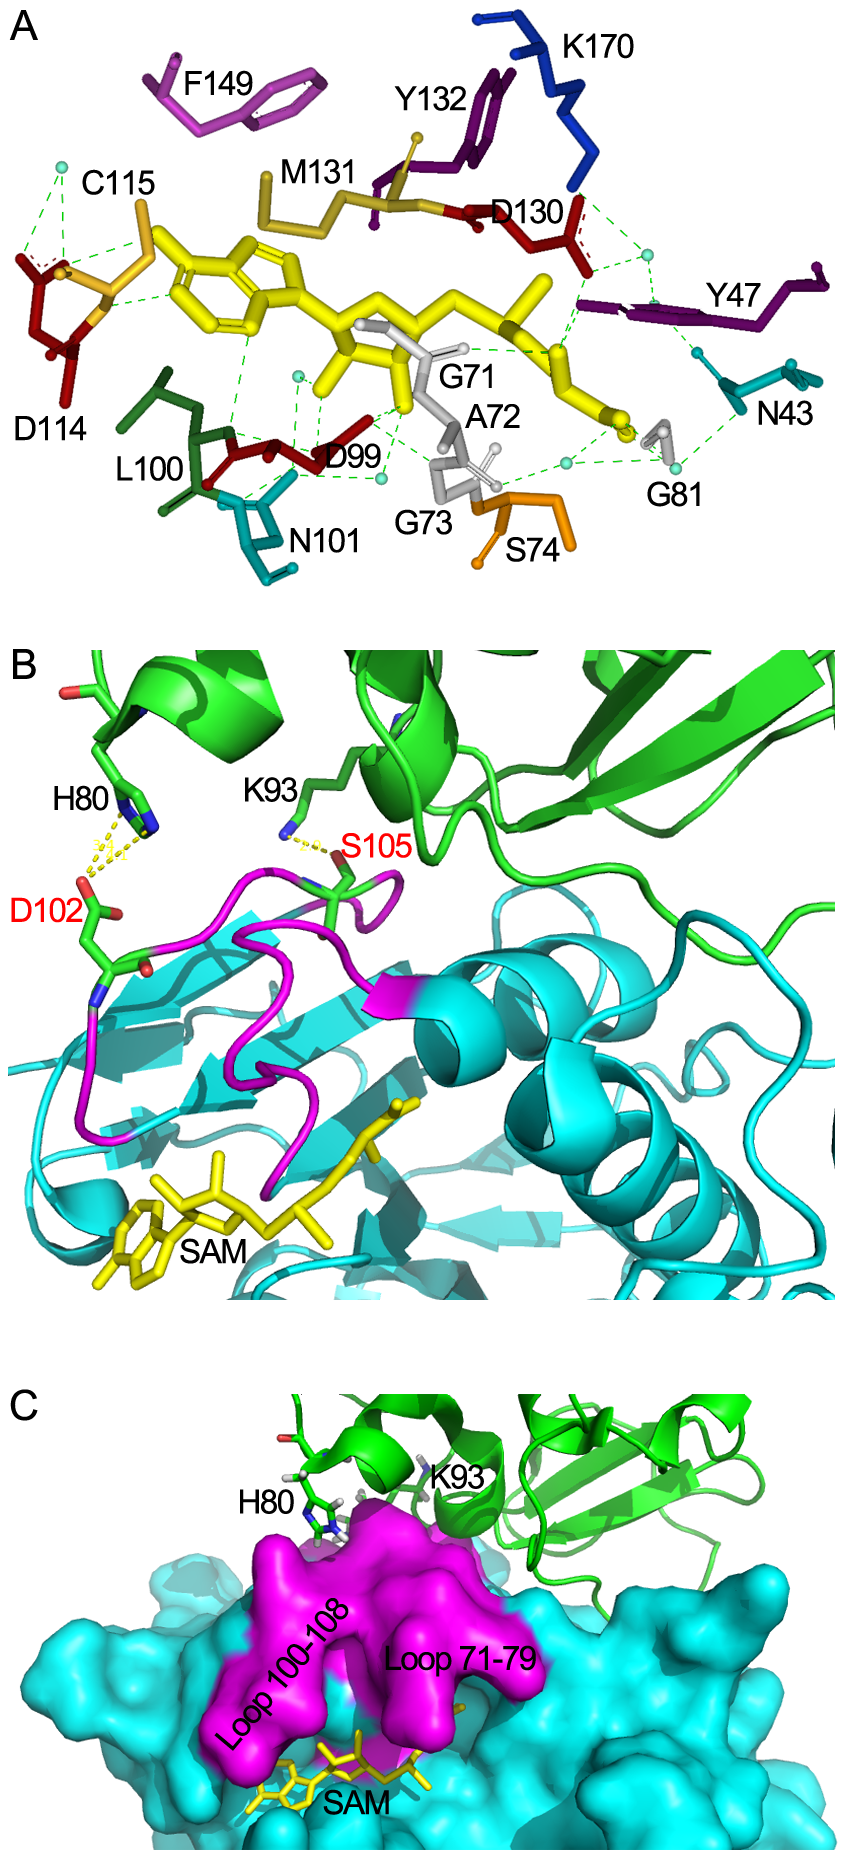 Structural mechanisms of nsp10 in stimulating the SAM binding of nsp16.